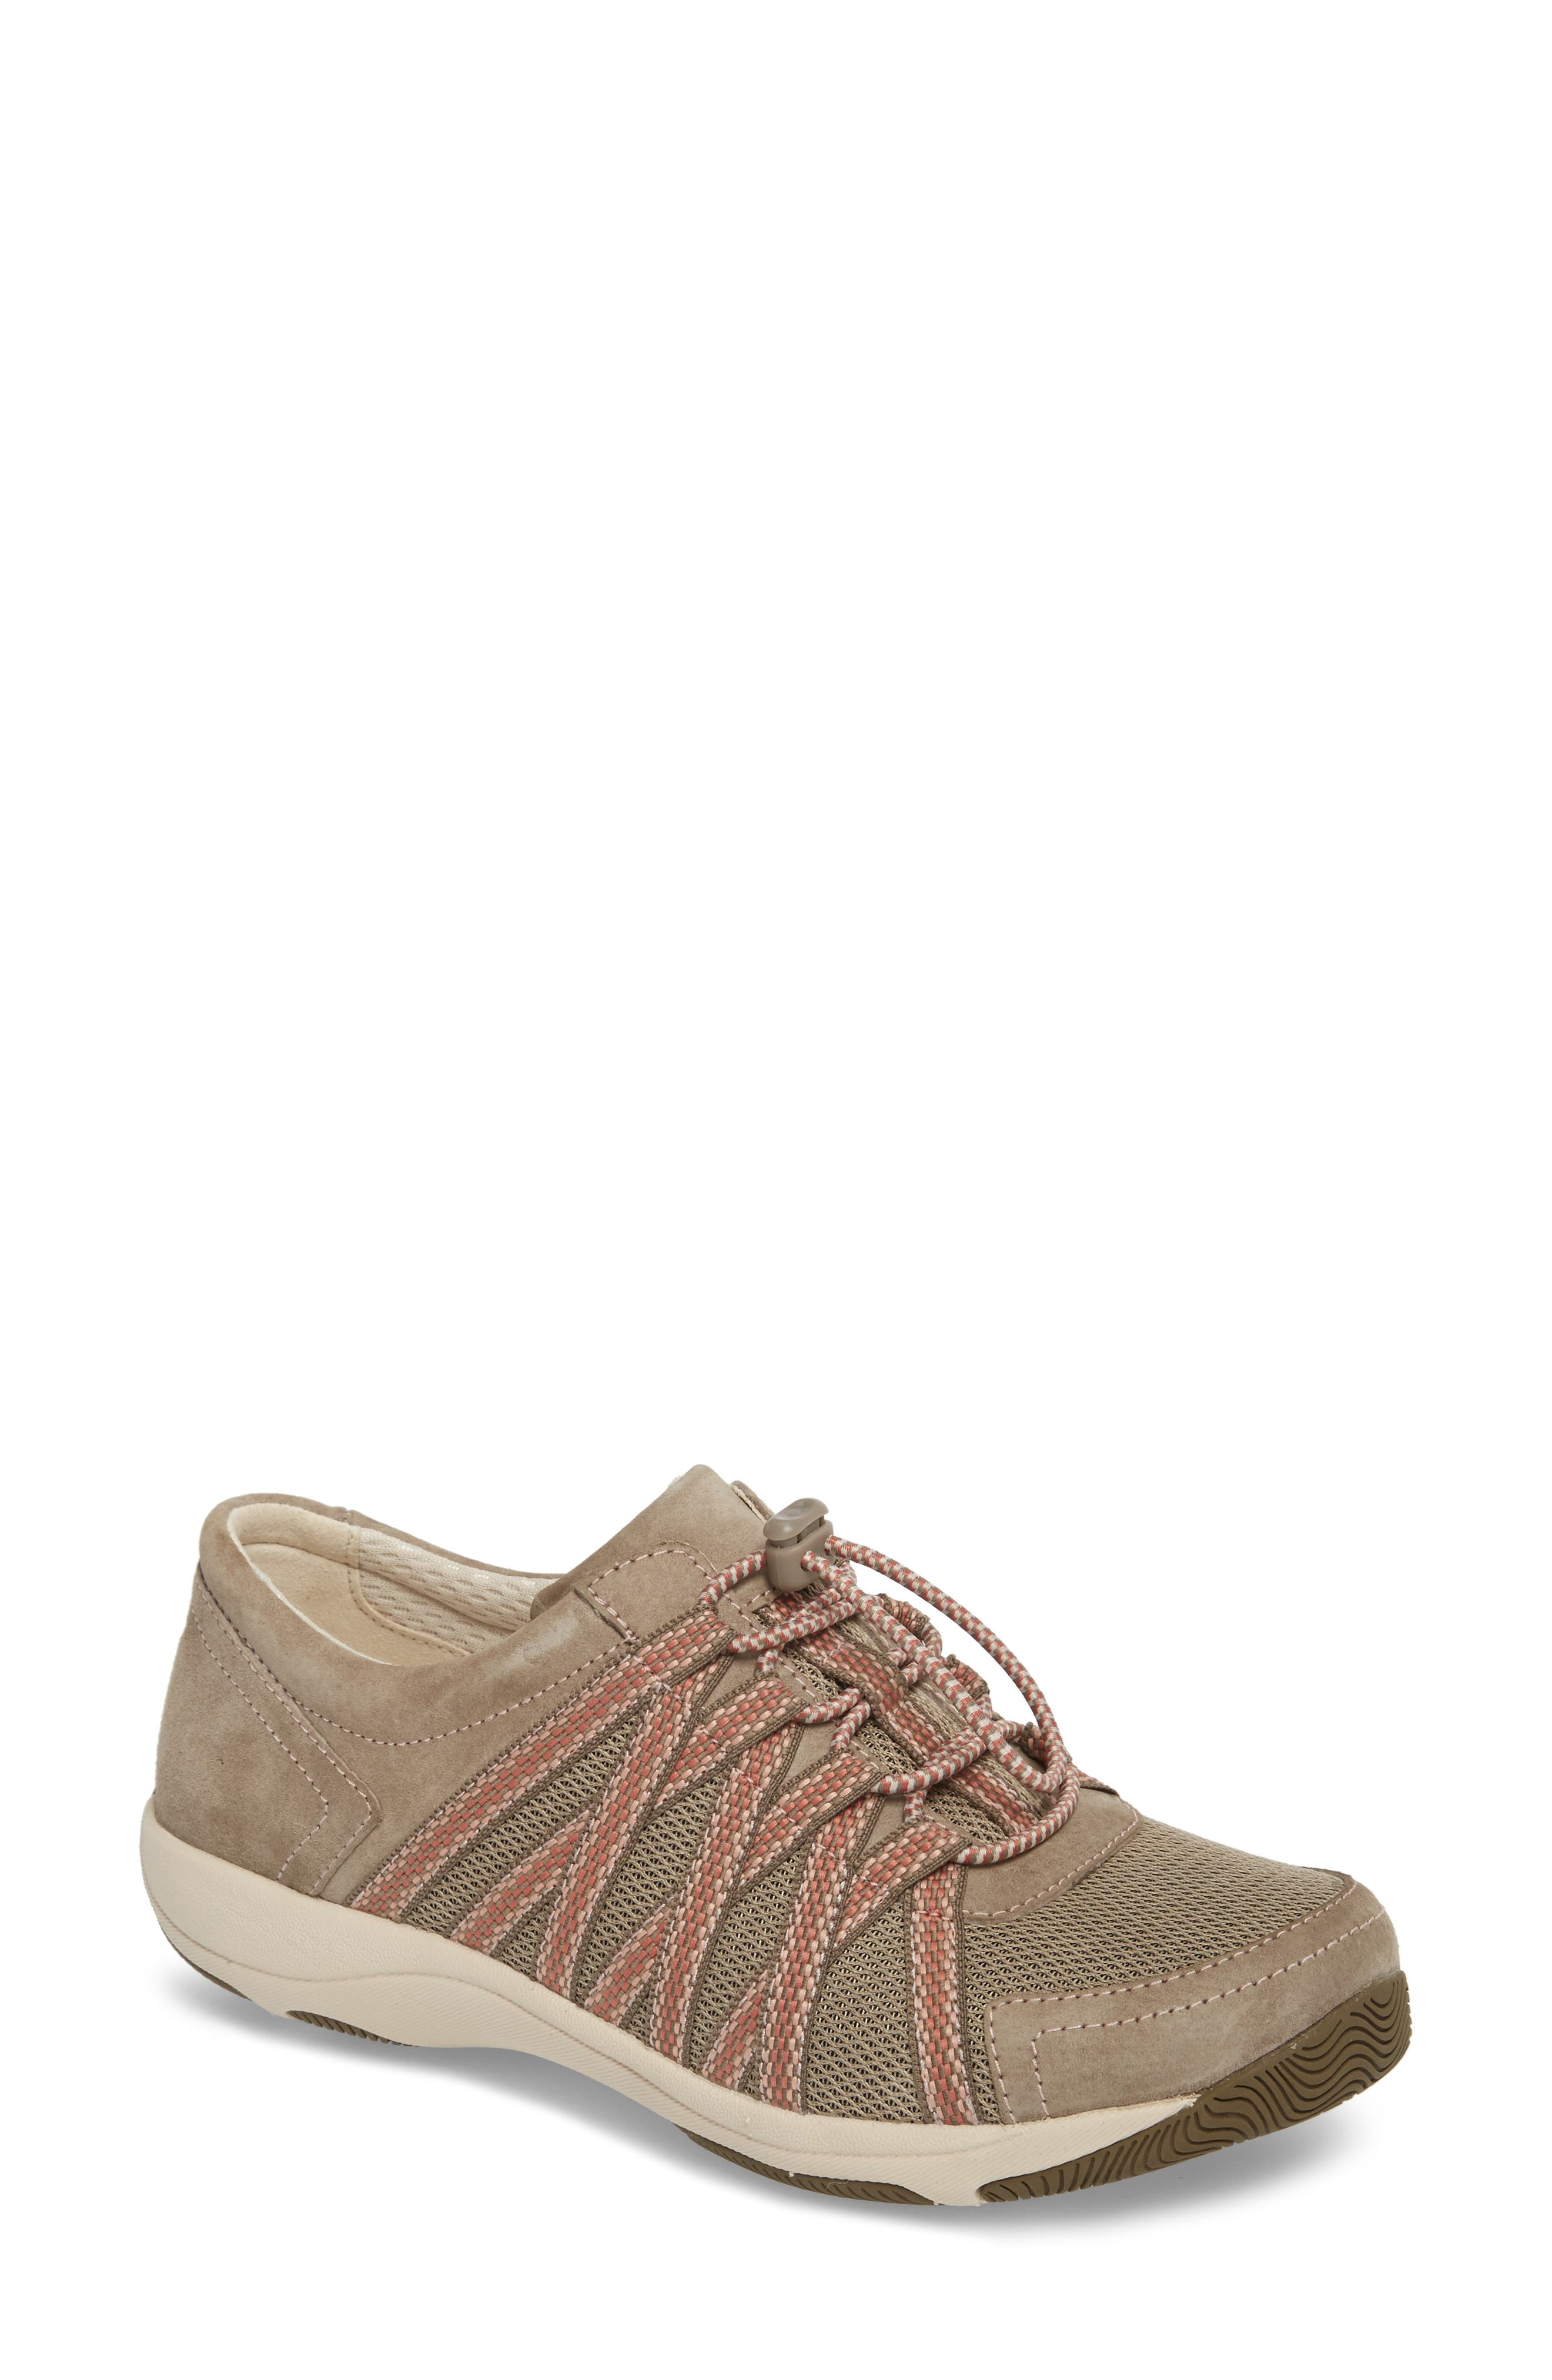 Halifax Collection Honor Sneaker,                         Main,                         color, Walnut Suede